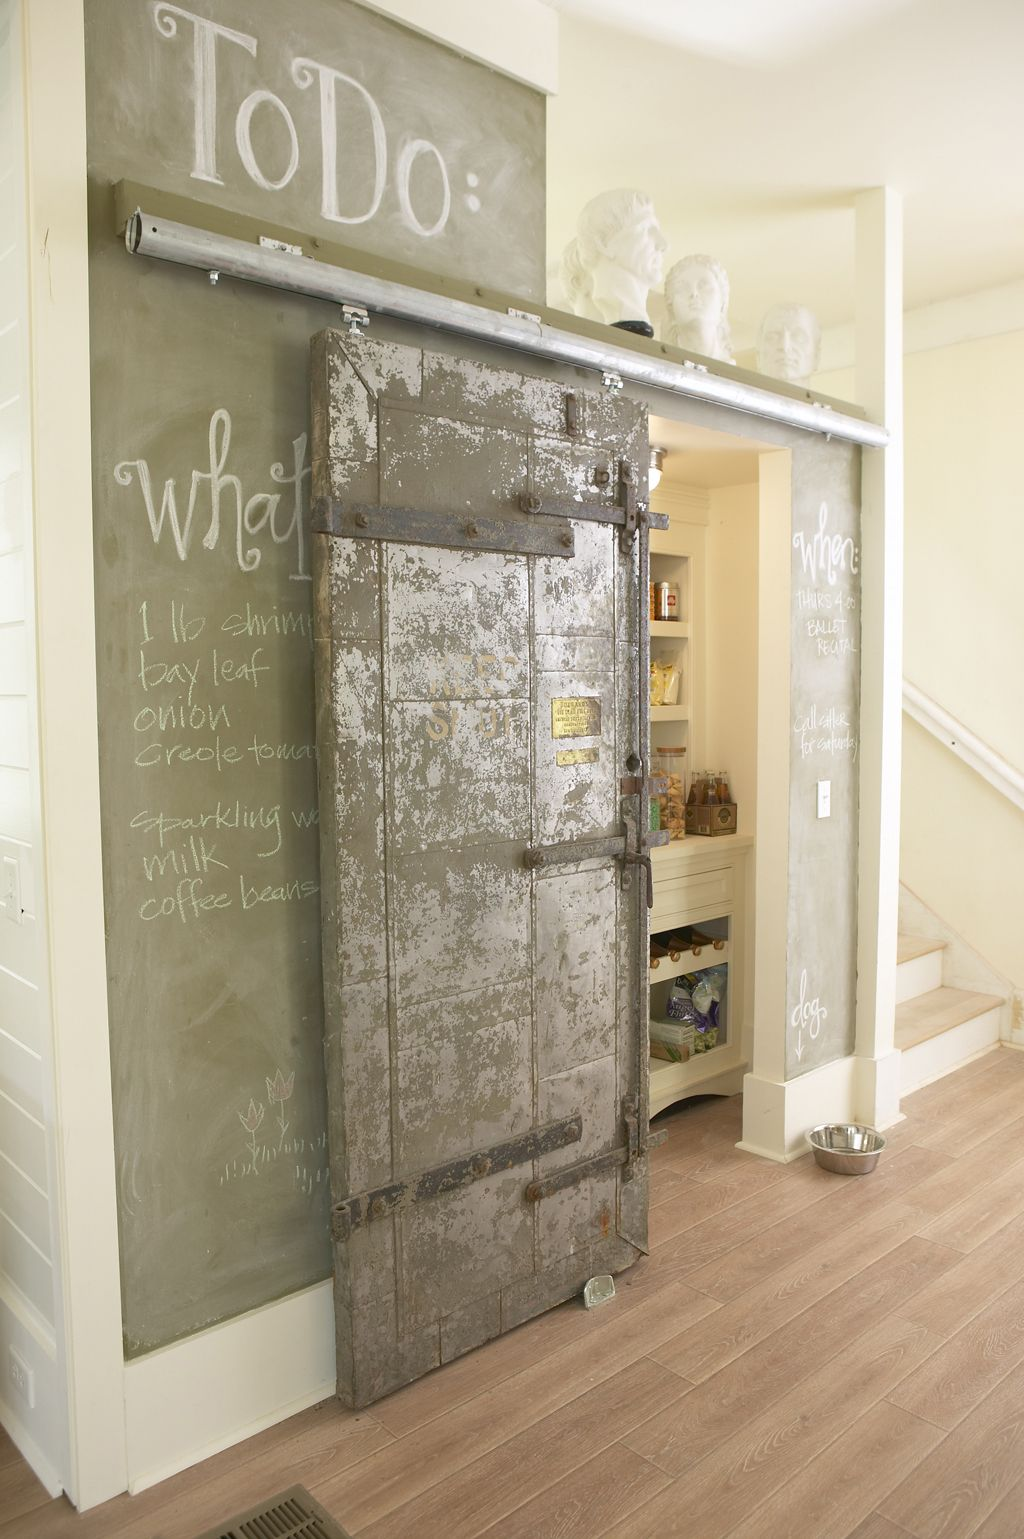 A vintage sliding bank door helps conceal the pantry in this New Orleans home. & A vintage sliding bank door helps conceal the pantry in this New ...